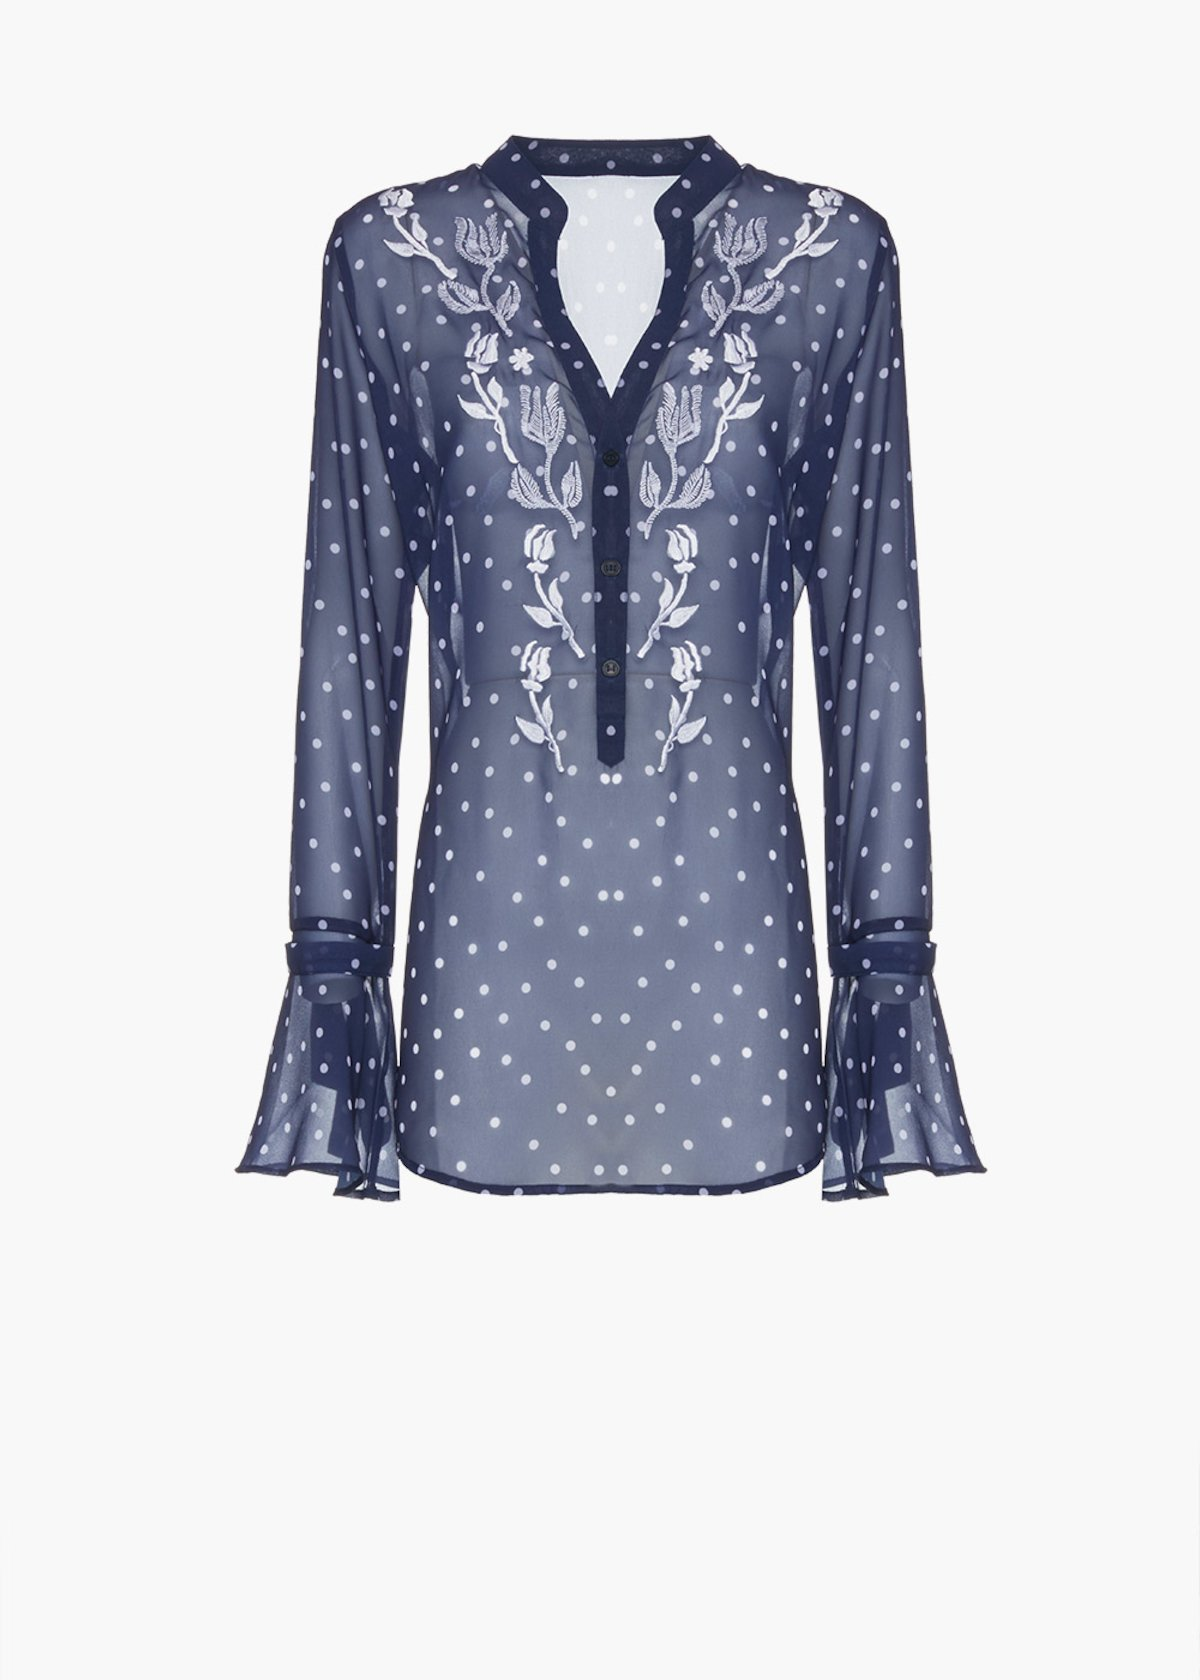 Chretien blouse in georgette with flower embroidery on the front - Medium Blue / White Pois - Woman - Category image